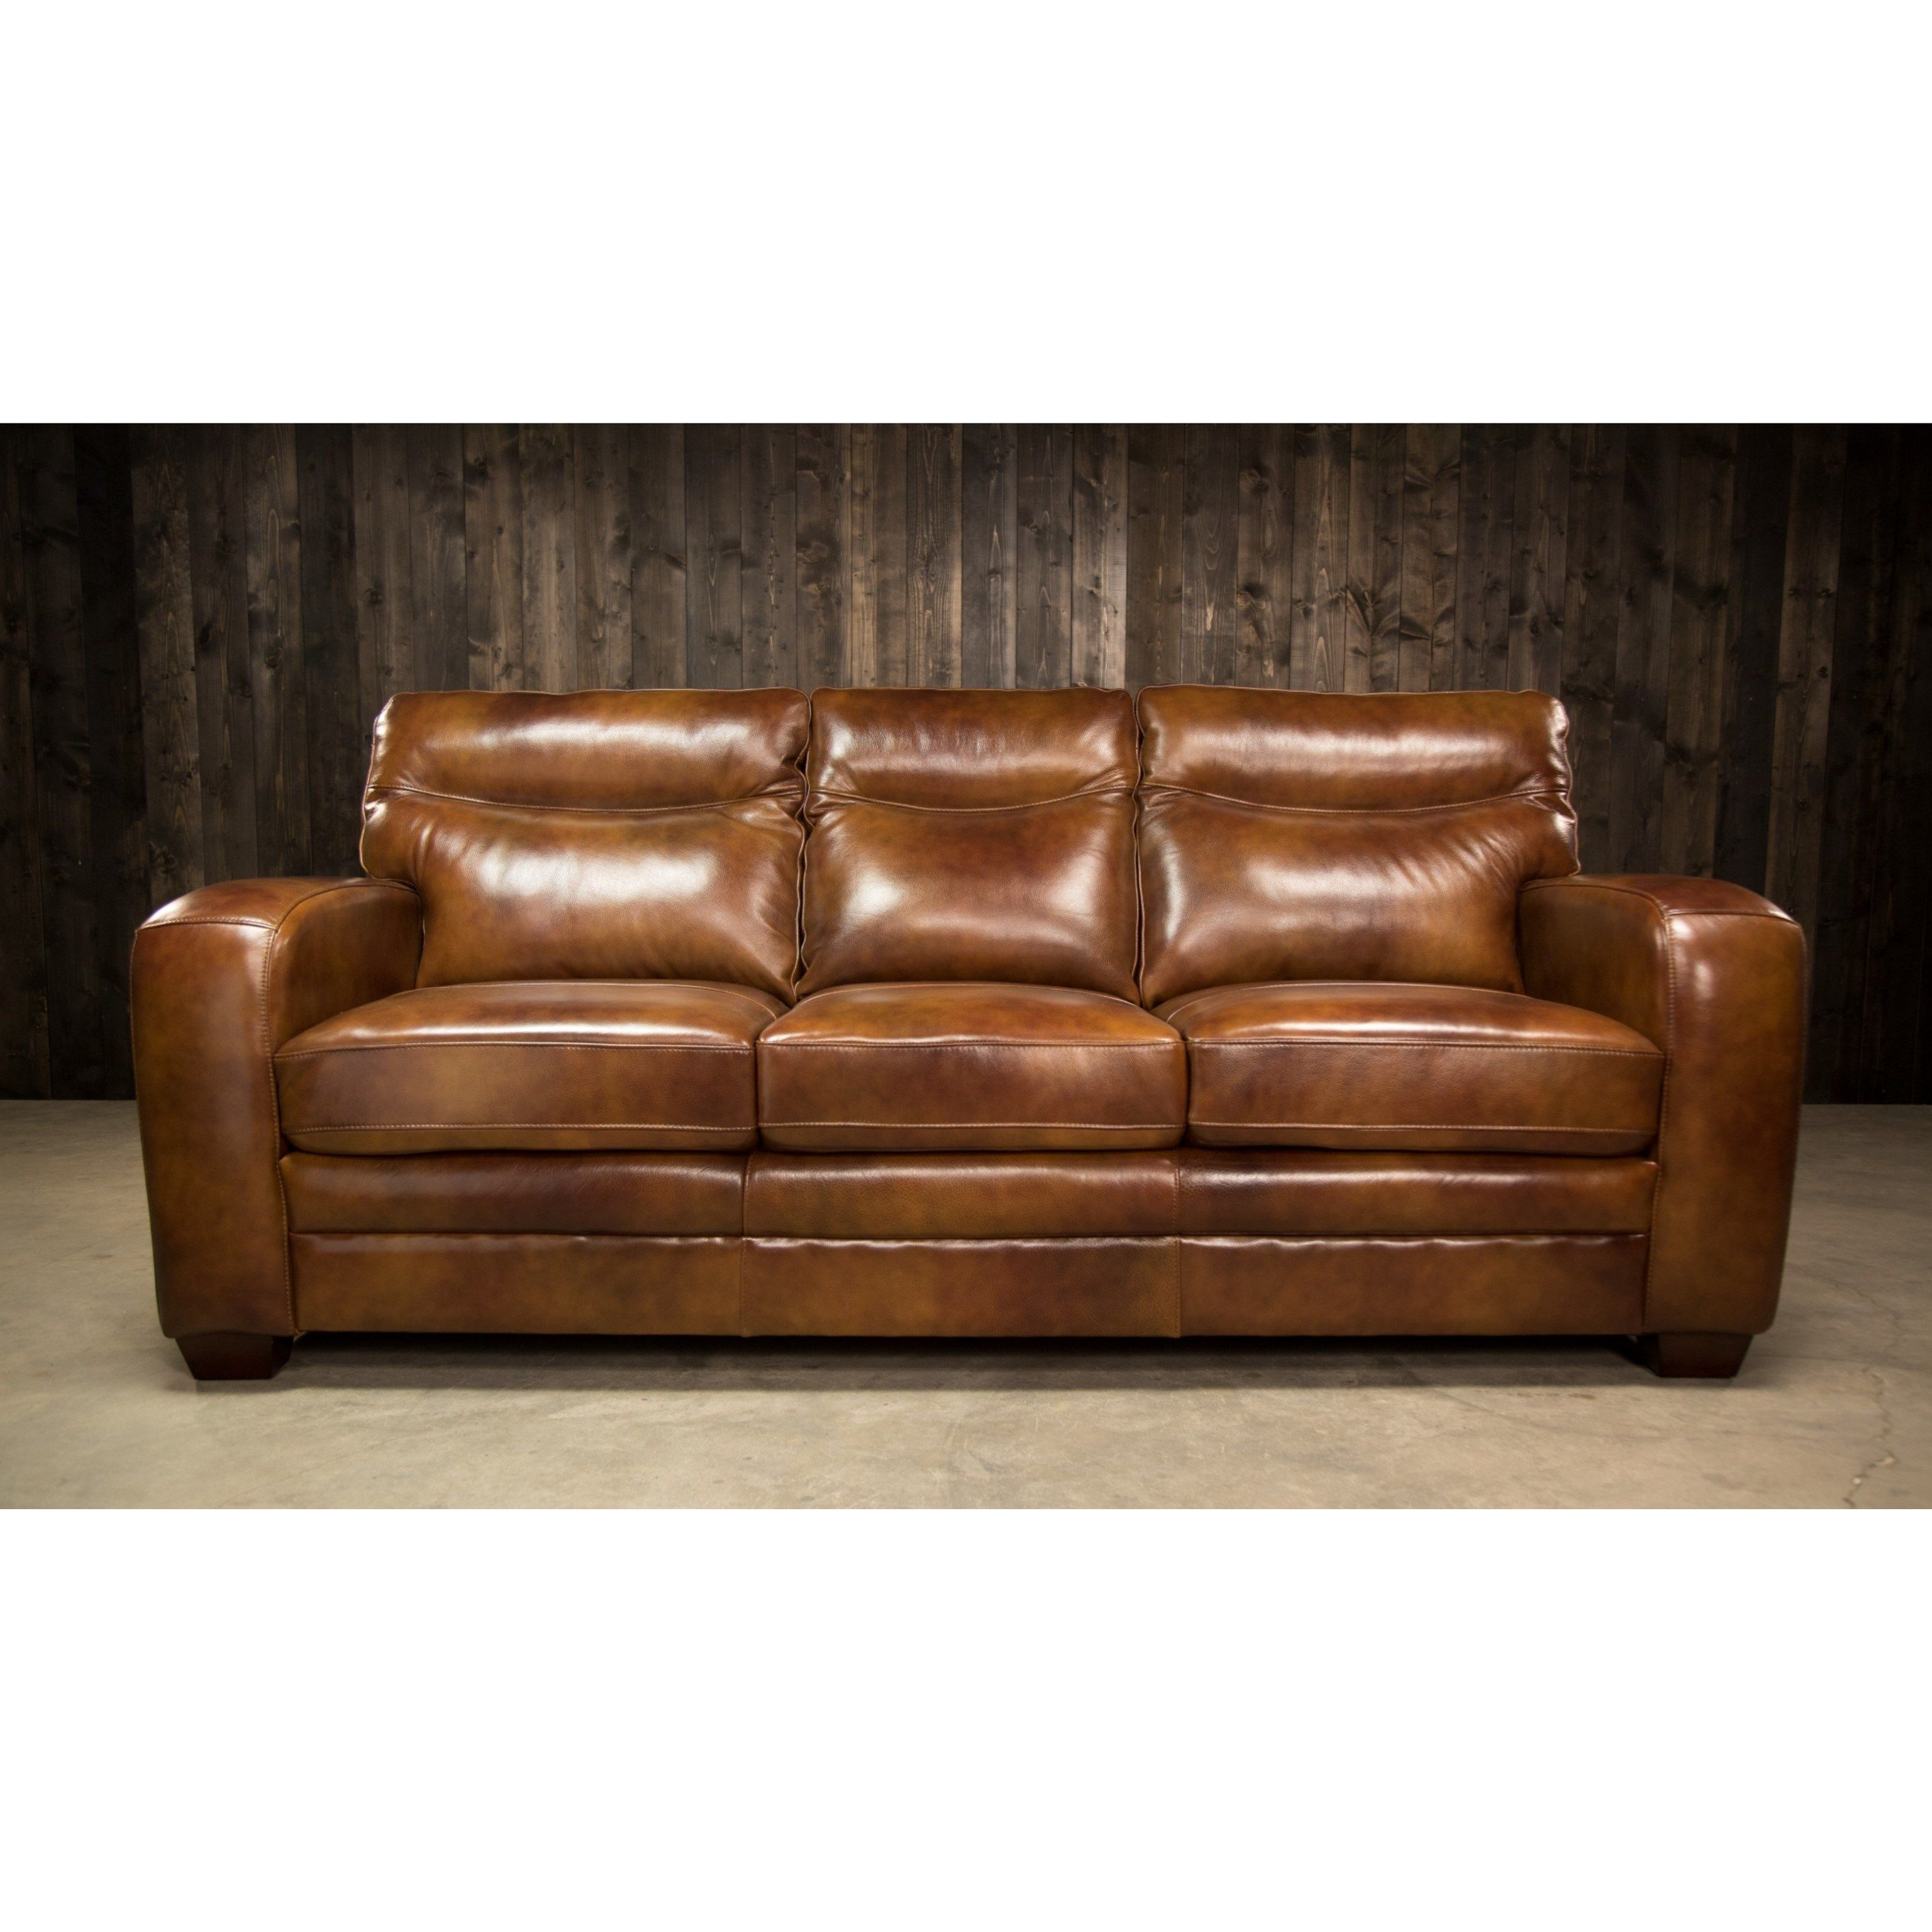 Montebello Leather Sofa With Low Profile Arms By Elements